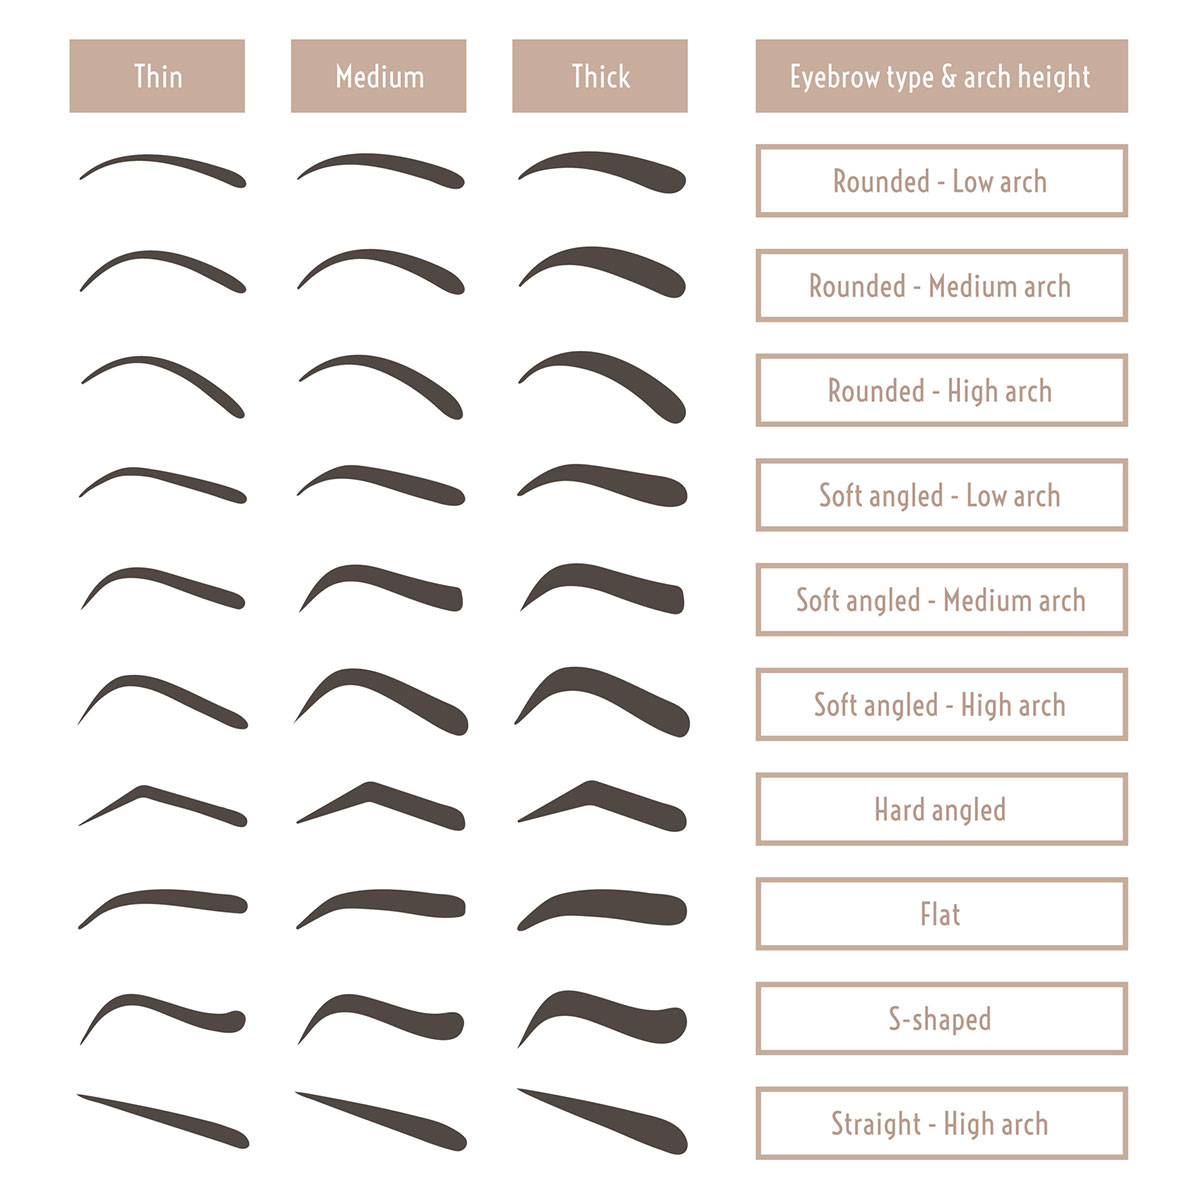 Different eyebrow shapes